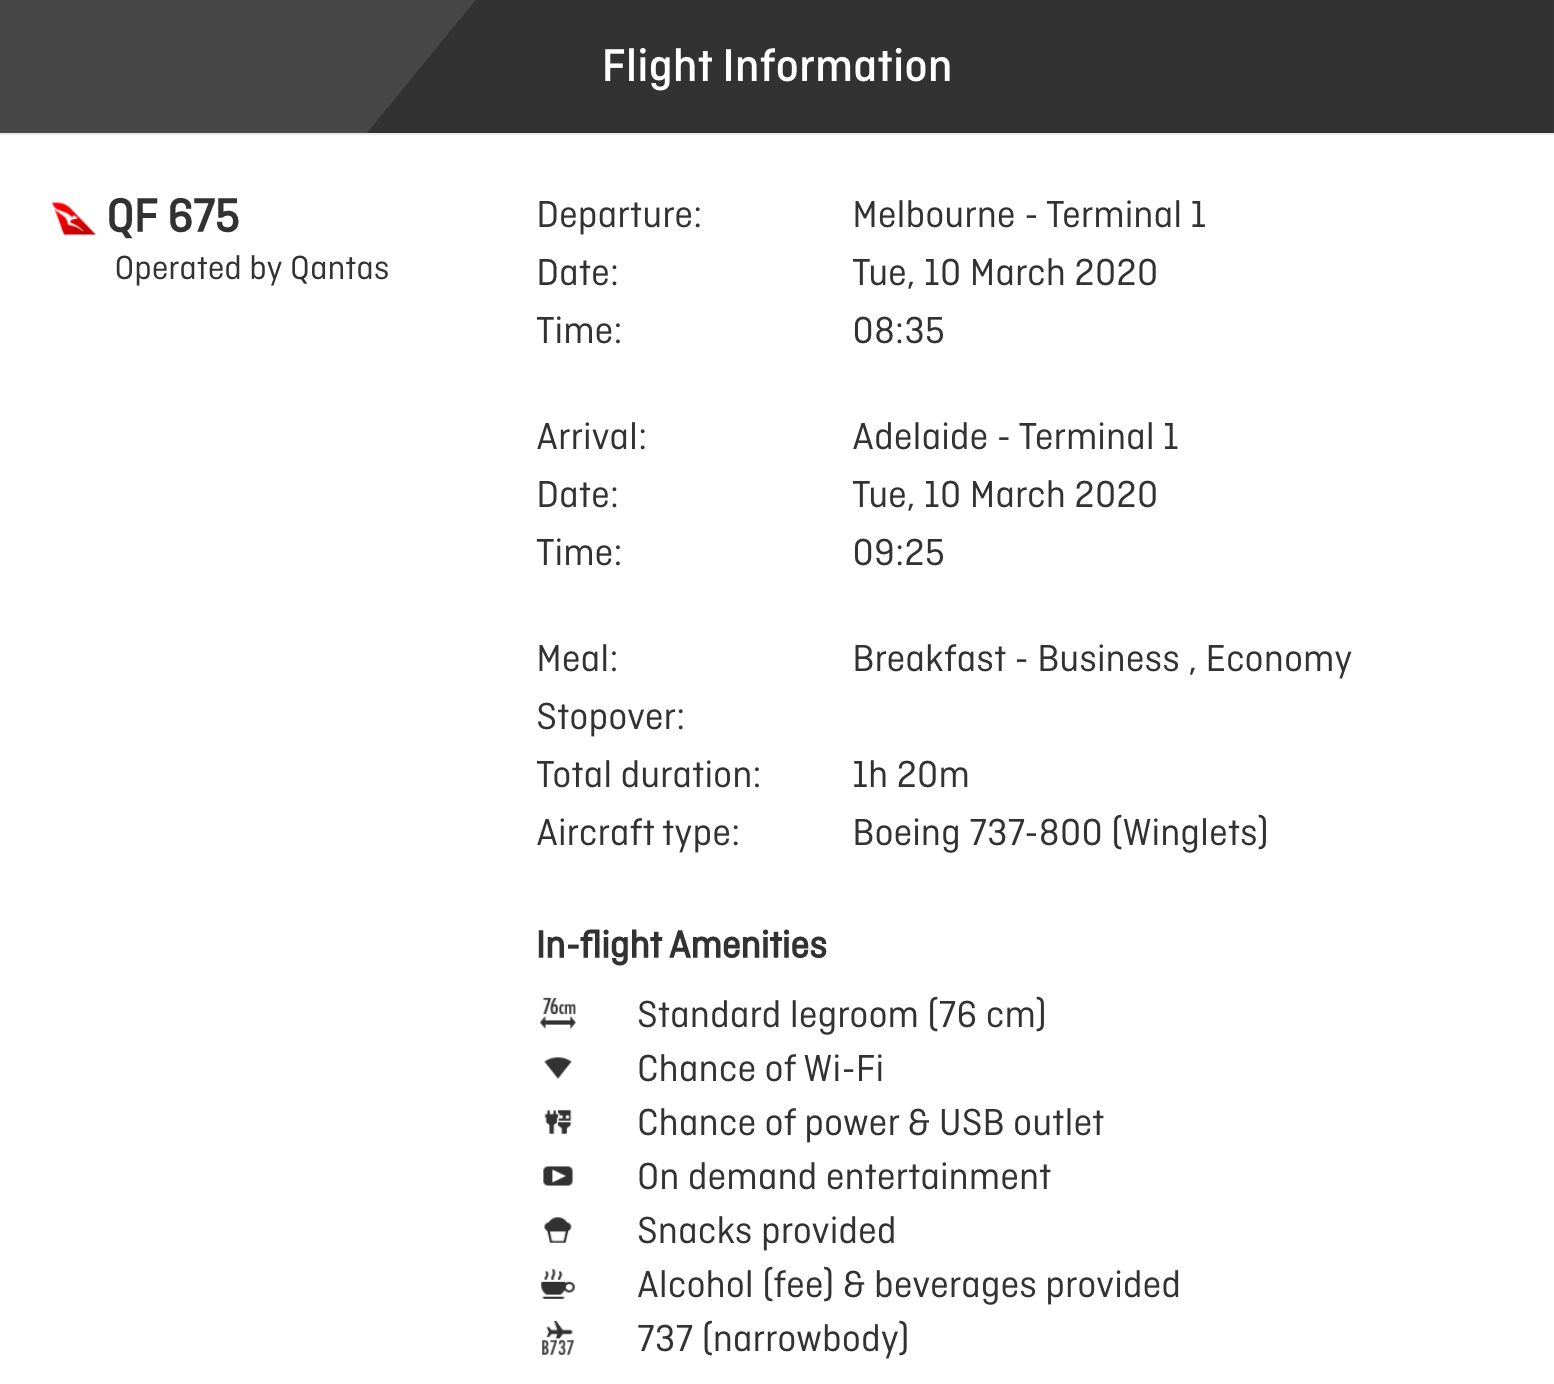 Qantas 737 review flight details